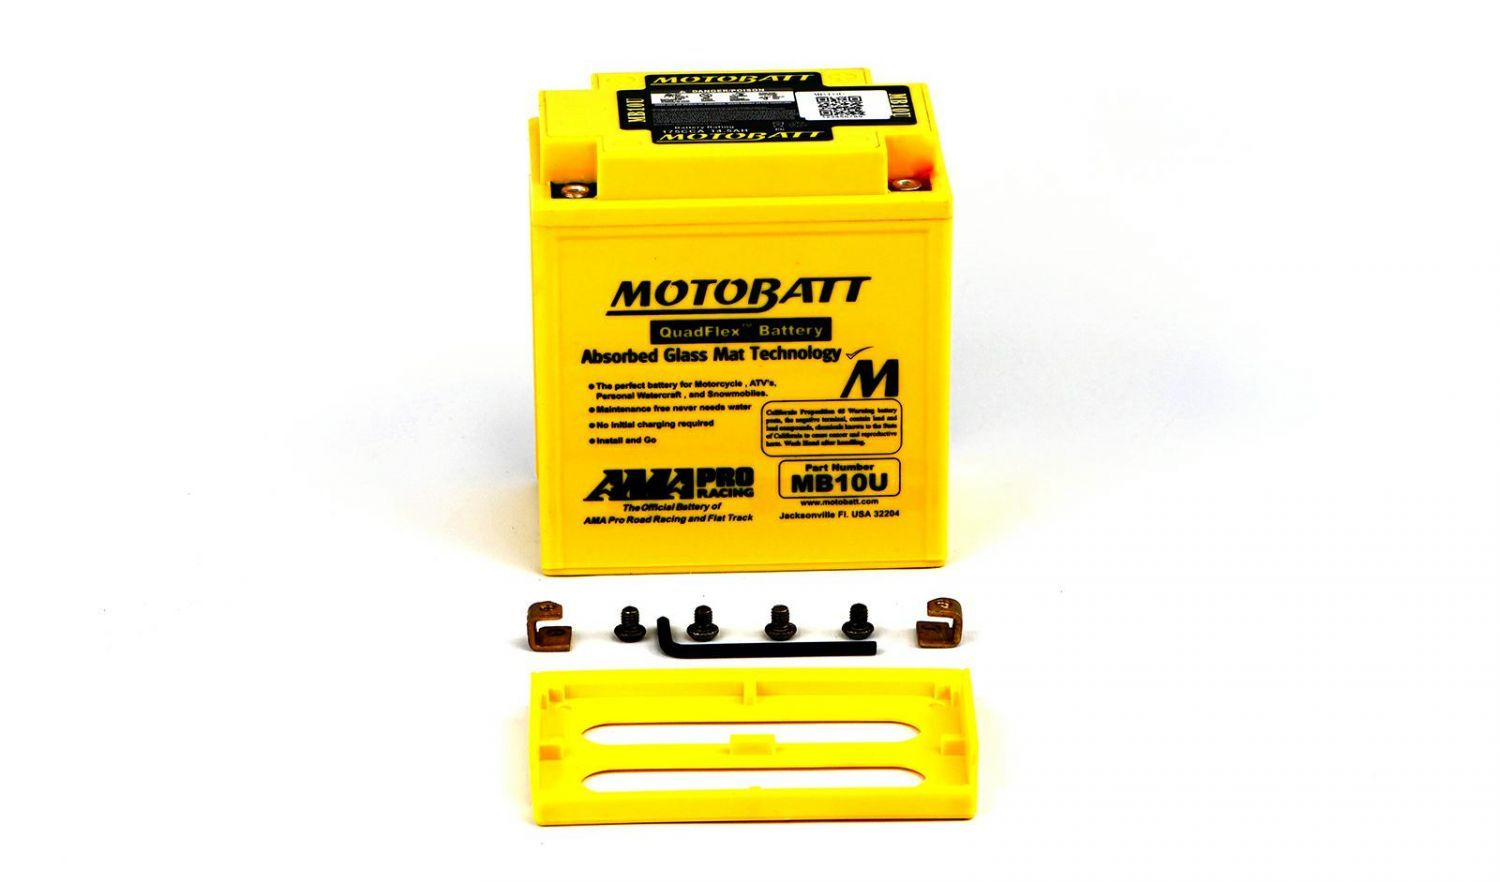 Motobatt Batteries - 501102MY image